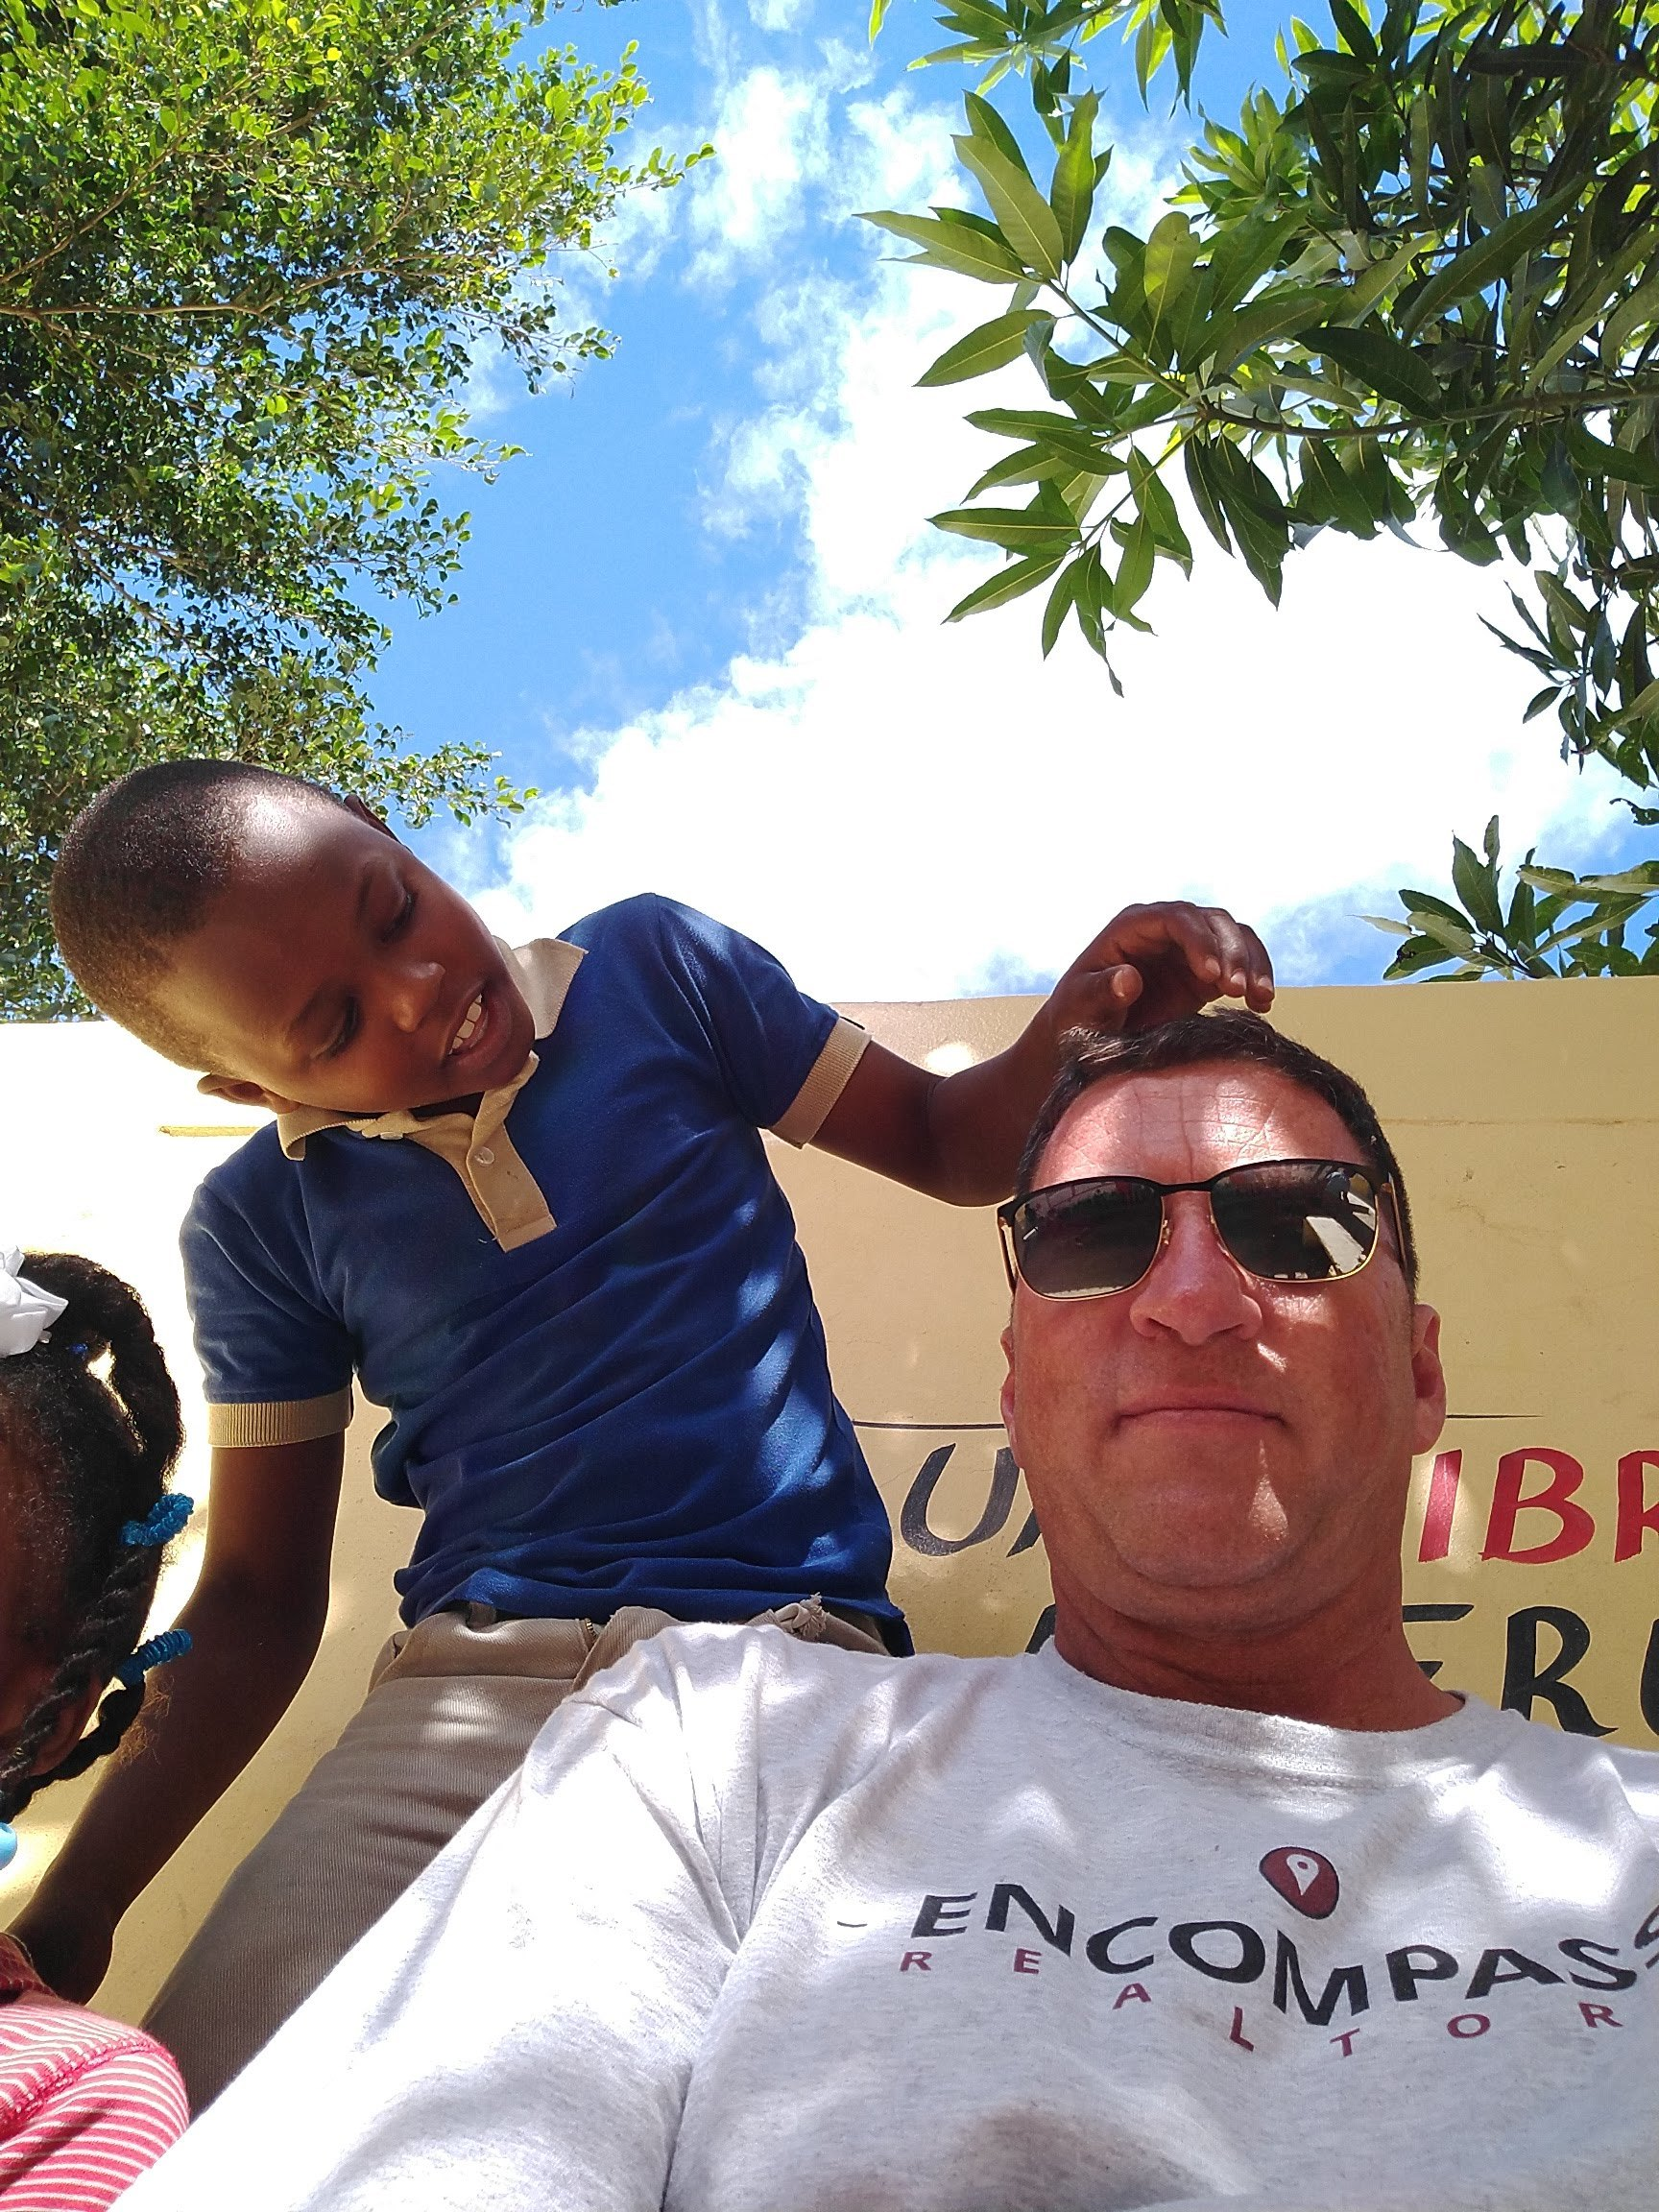 recruit 2.jpg